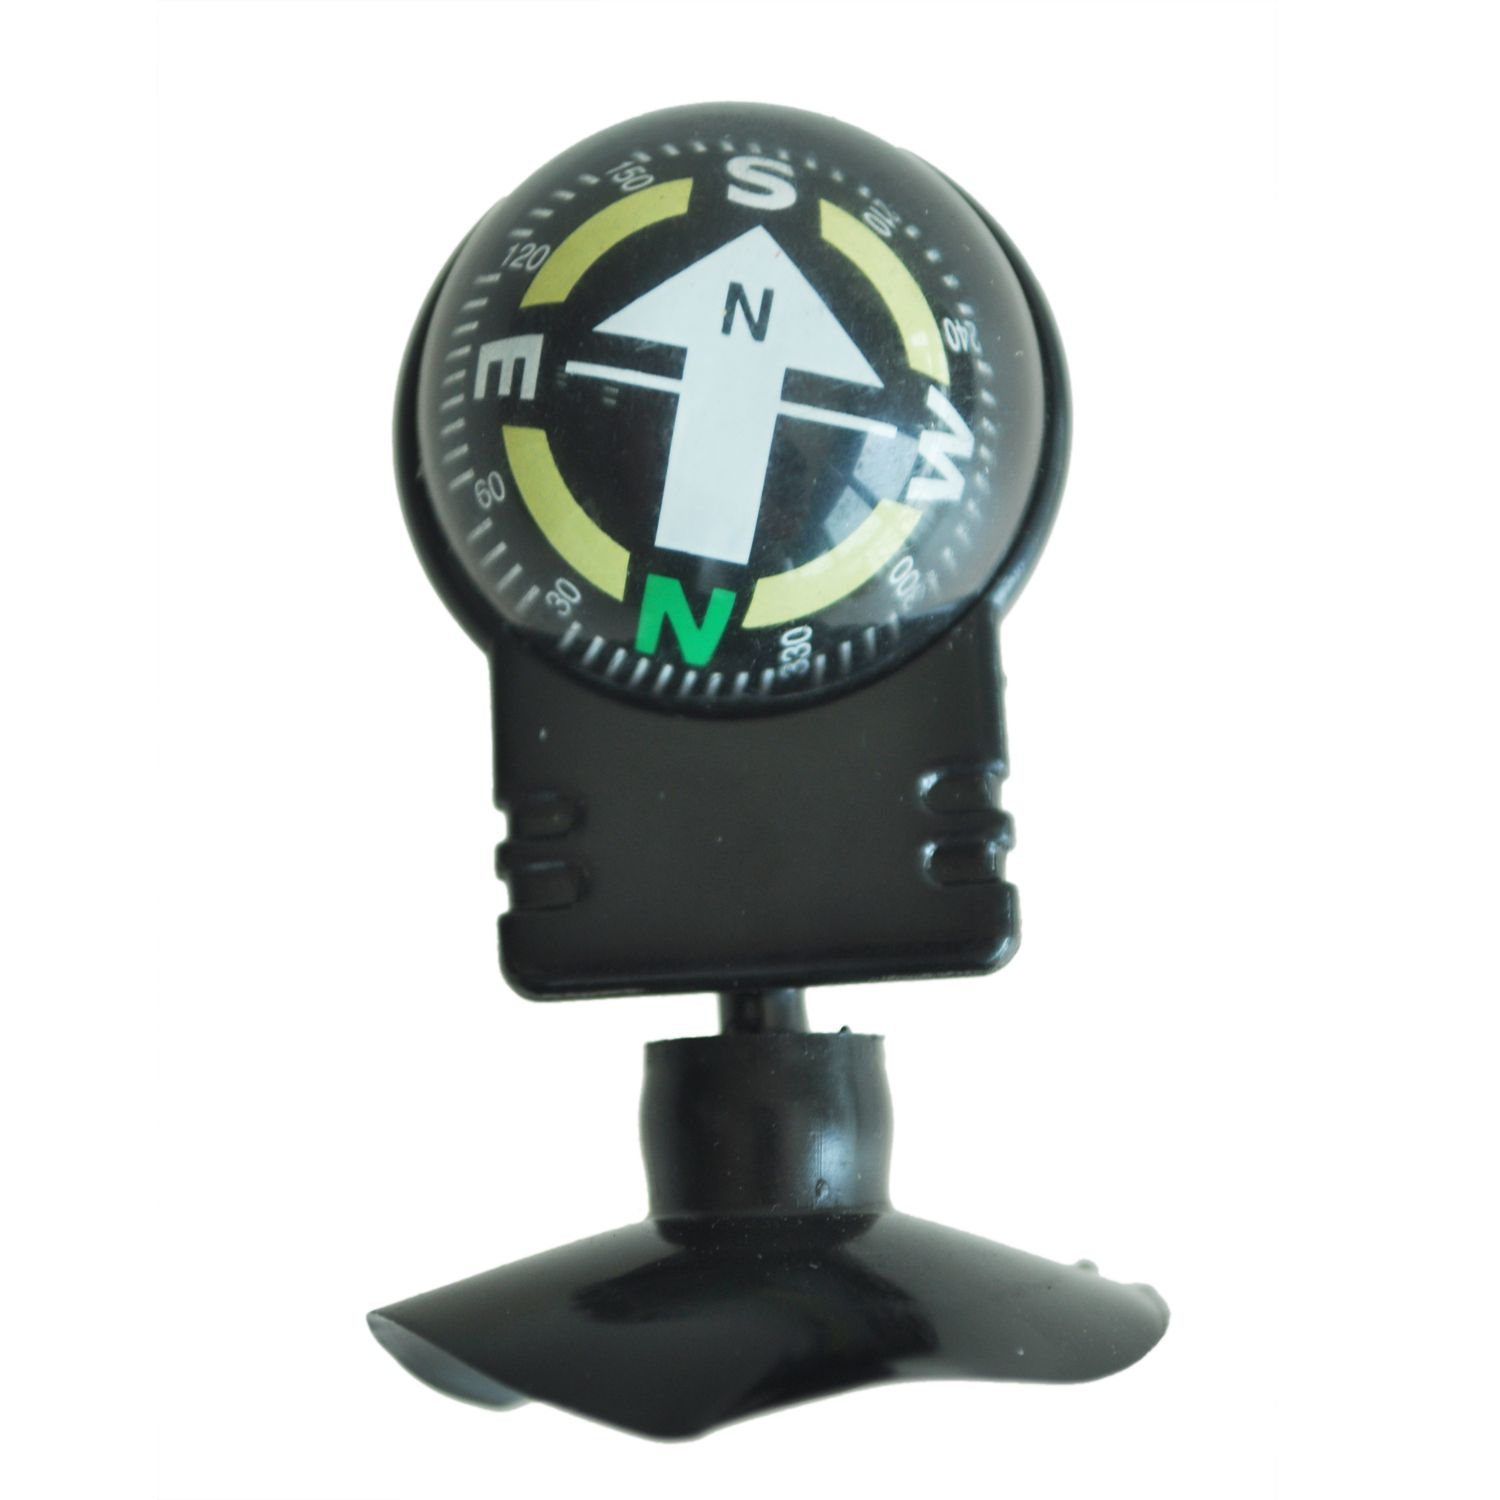 Electronic Digital Compass,Adjustable Military Marine Ball Night Vision Compass for Car Boat Vehicle Caravan Truck Camping & Hiking Compasses